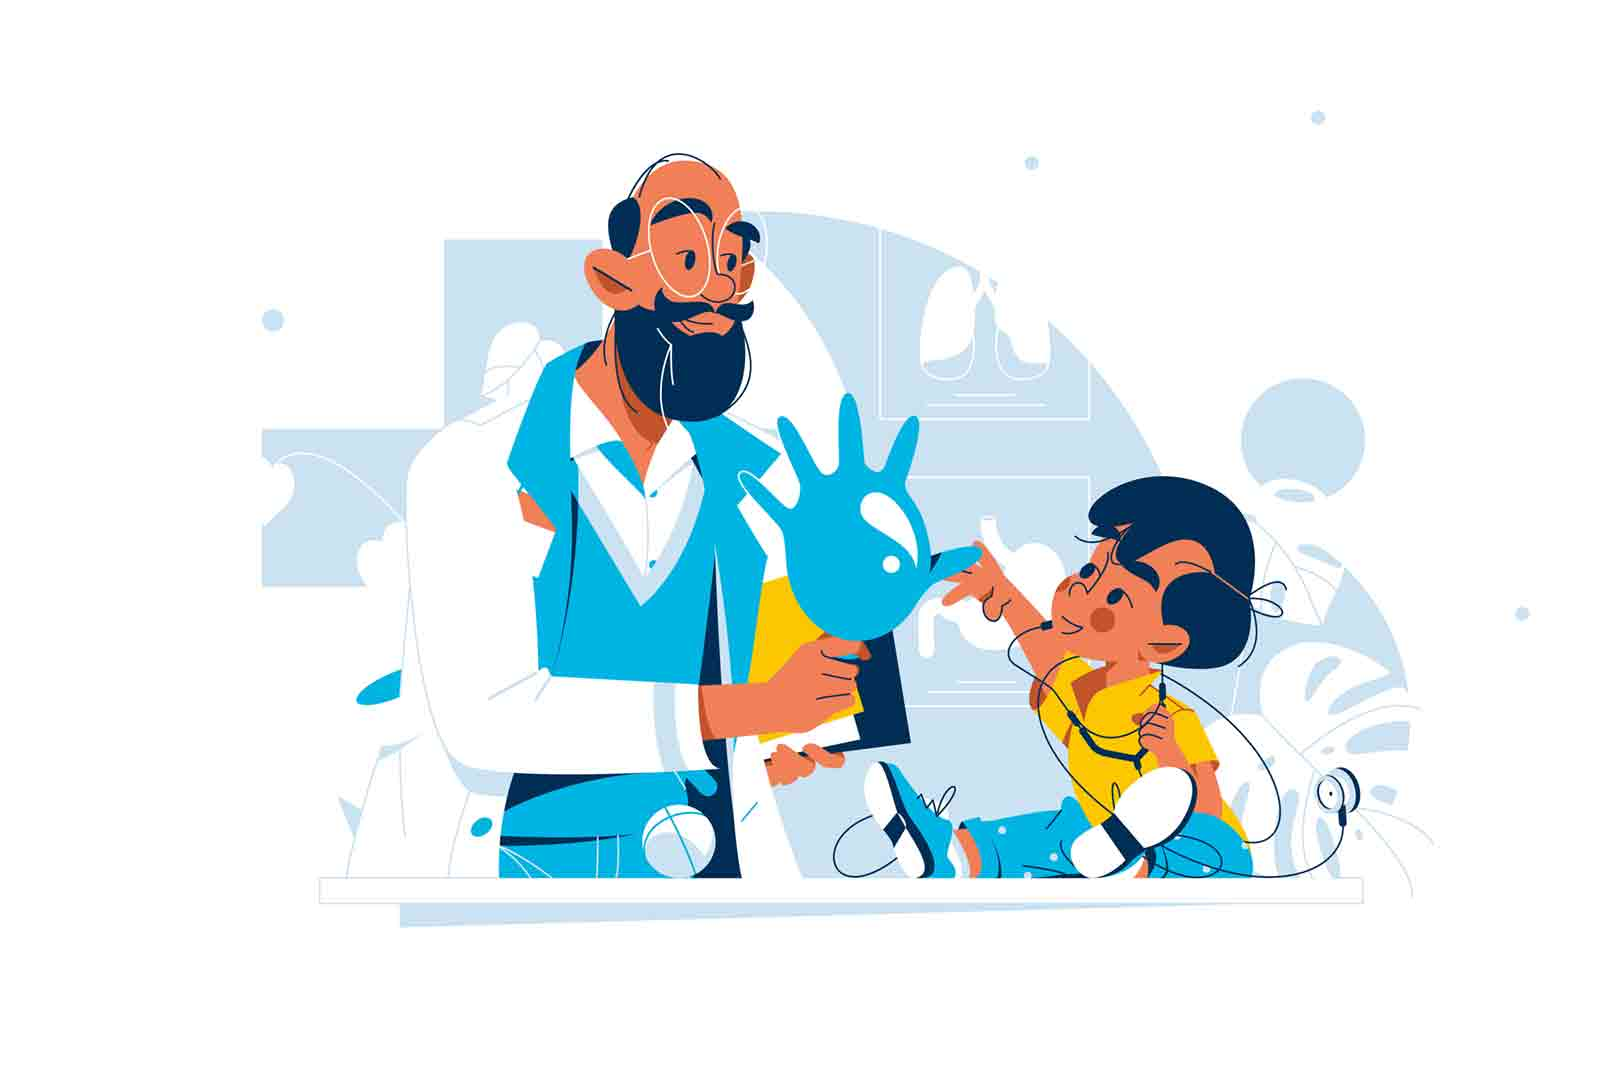 pediatrician, kid, checkup, children, doctor, vector, illustration, entertain, child, appointment, flat, style, health, medicine, healthcare, clinic, hospital, baby, professional, nurse, uniform, stethoscope, tool, equipment, recovery, disease, sick, ill, cough, qualified, office, fun, toddler, consultation, examination, organism, patient, attention, medic, listen, glove, play, test, body, male, specialist